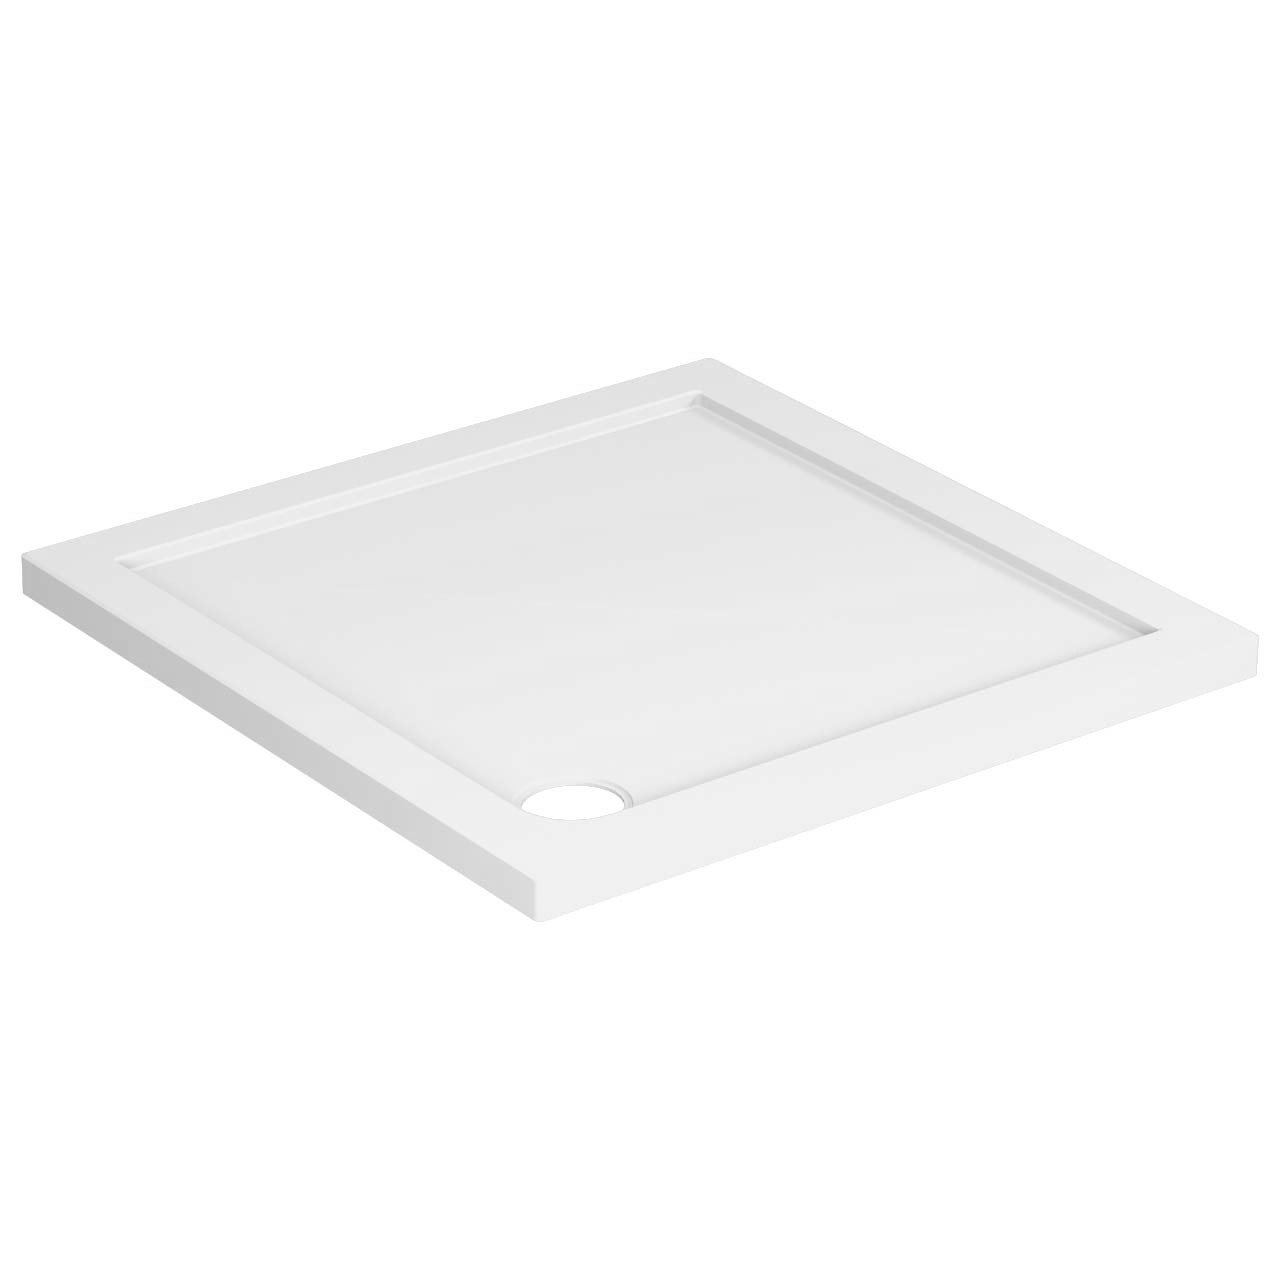 40mm Pearlstone 800 x 800 Square Shower Tray